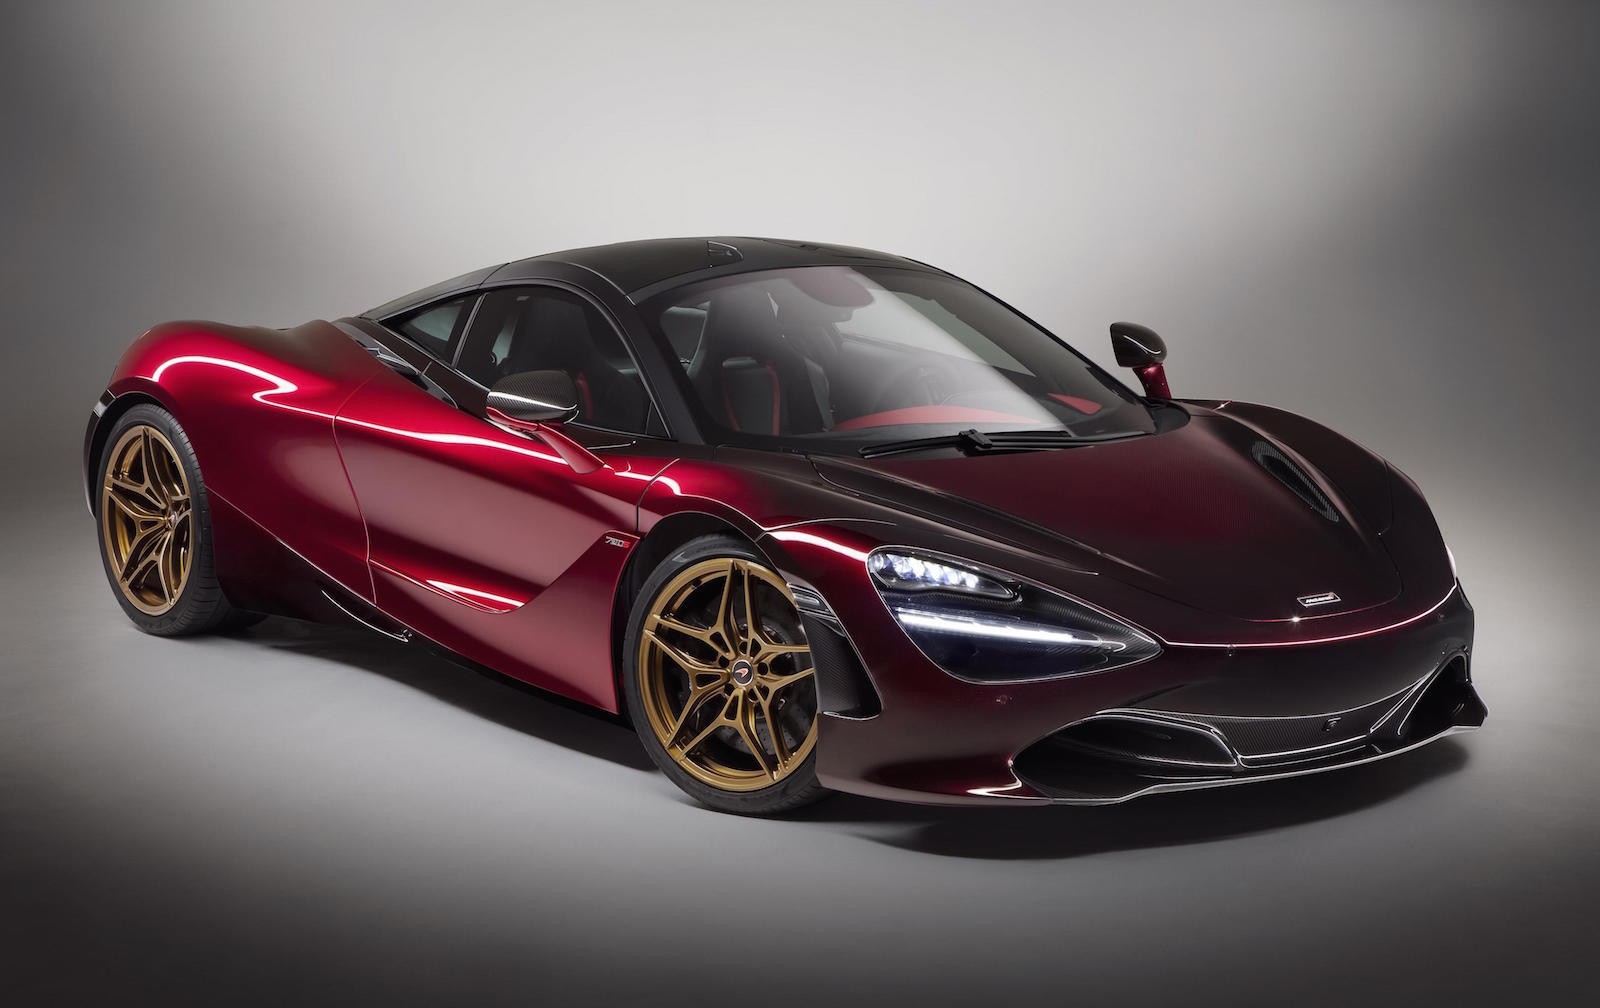 McLaren shows off 720S 'Velocity', created by MSO